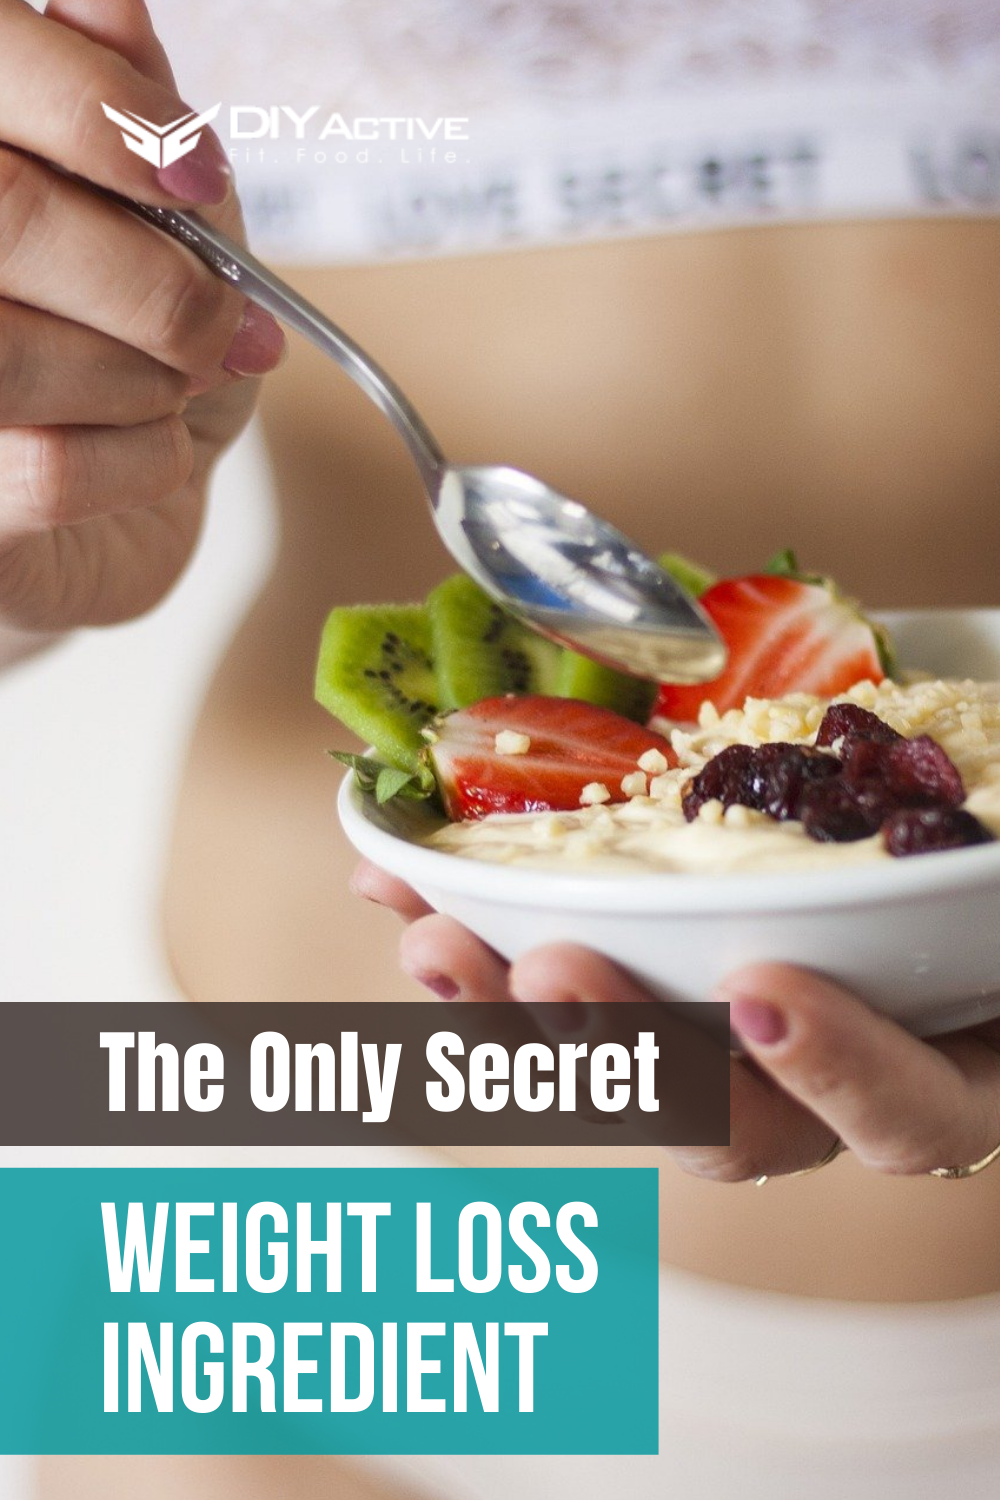 The Only Secret Weight Loss Ingredient: From Size 12 to 8 in One Month